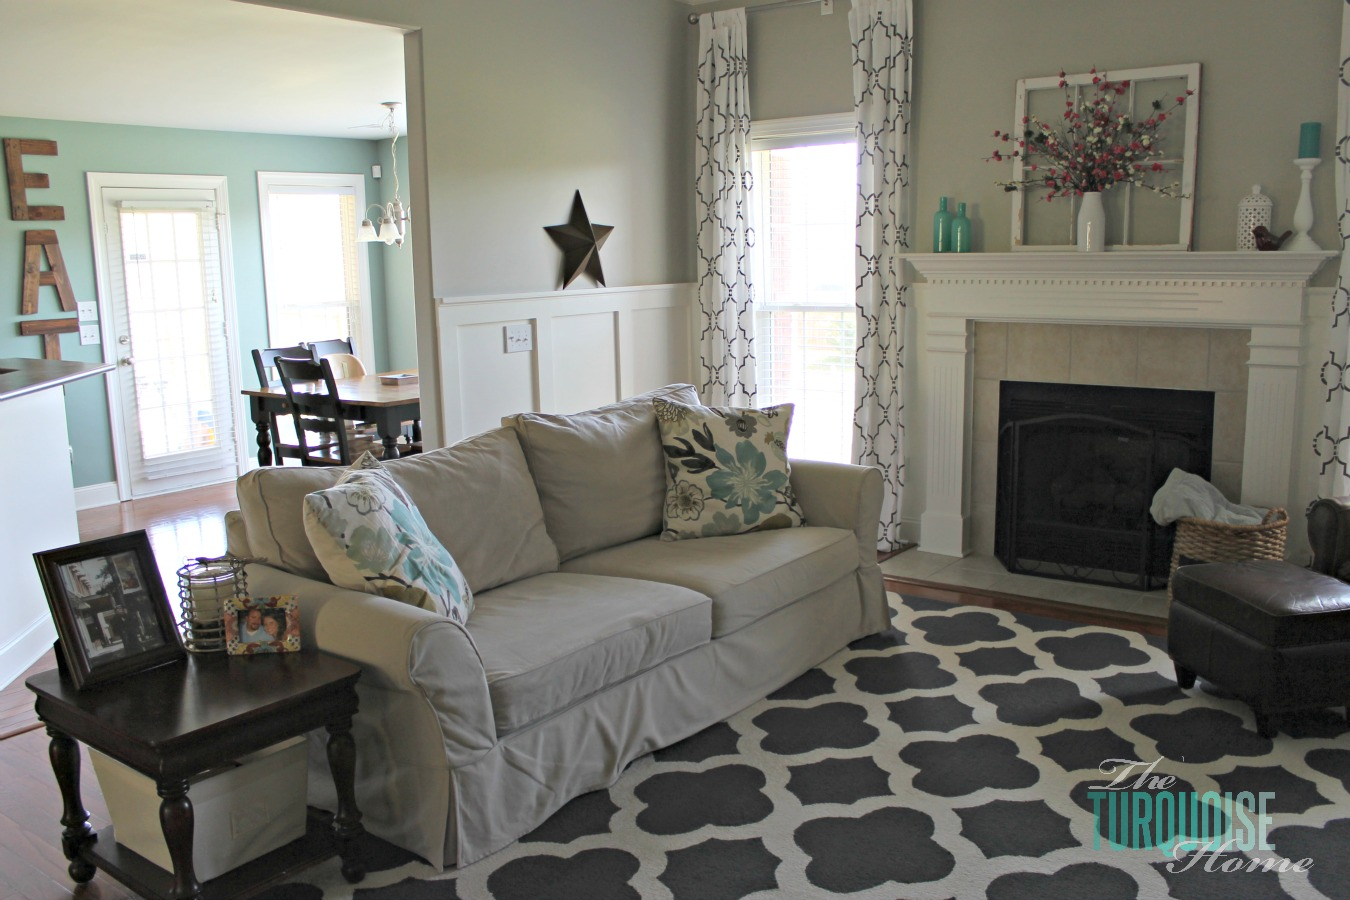 living room makeover part 7 final reveal the turquoise home